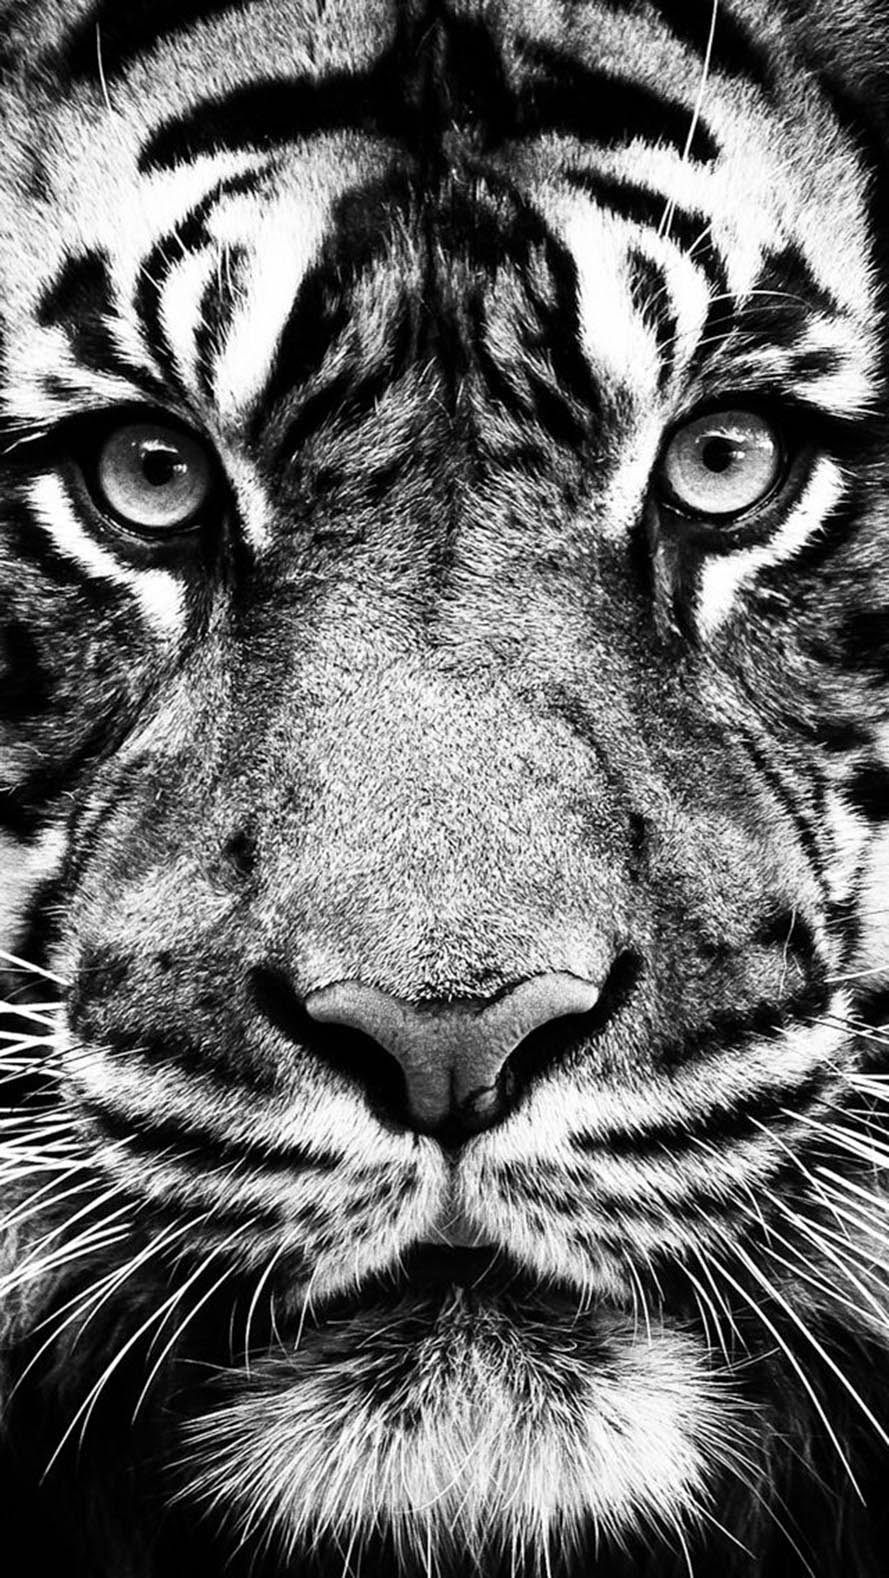 Pin By Laura Bufano On Wallpapers Tiger Wallpaper Big Cats Art Animals Black And White